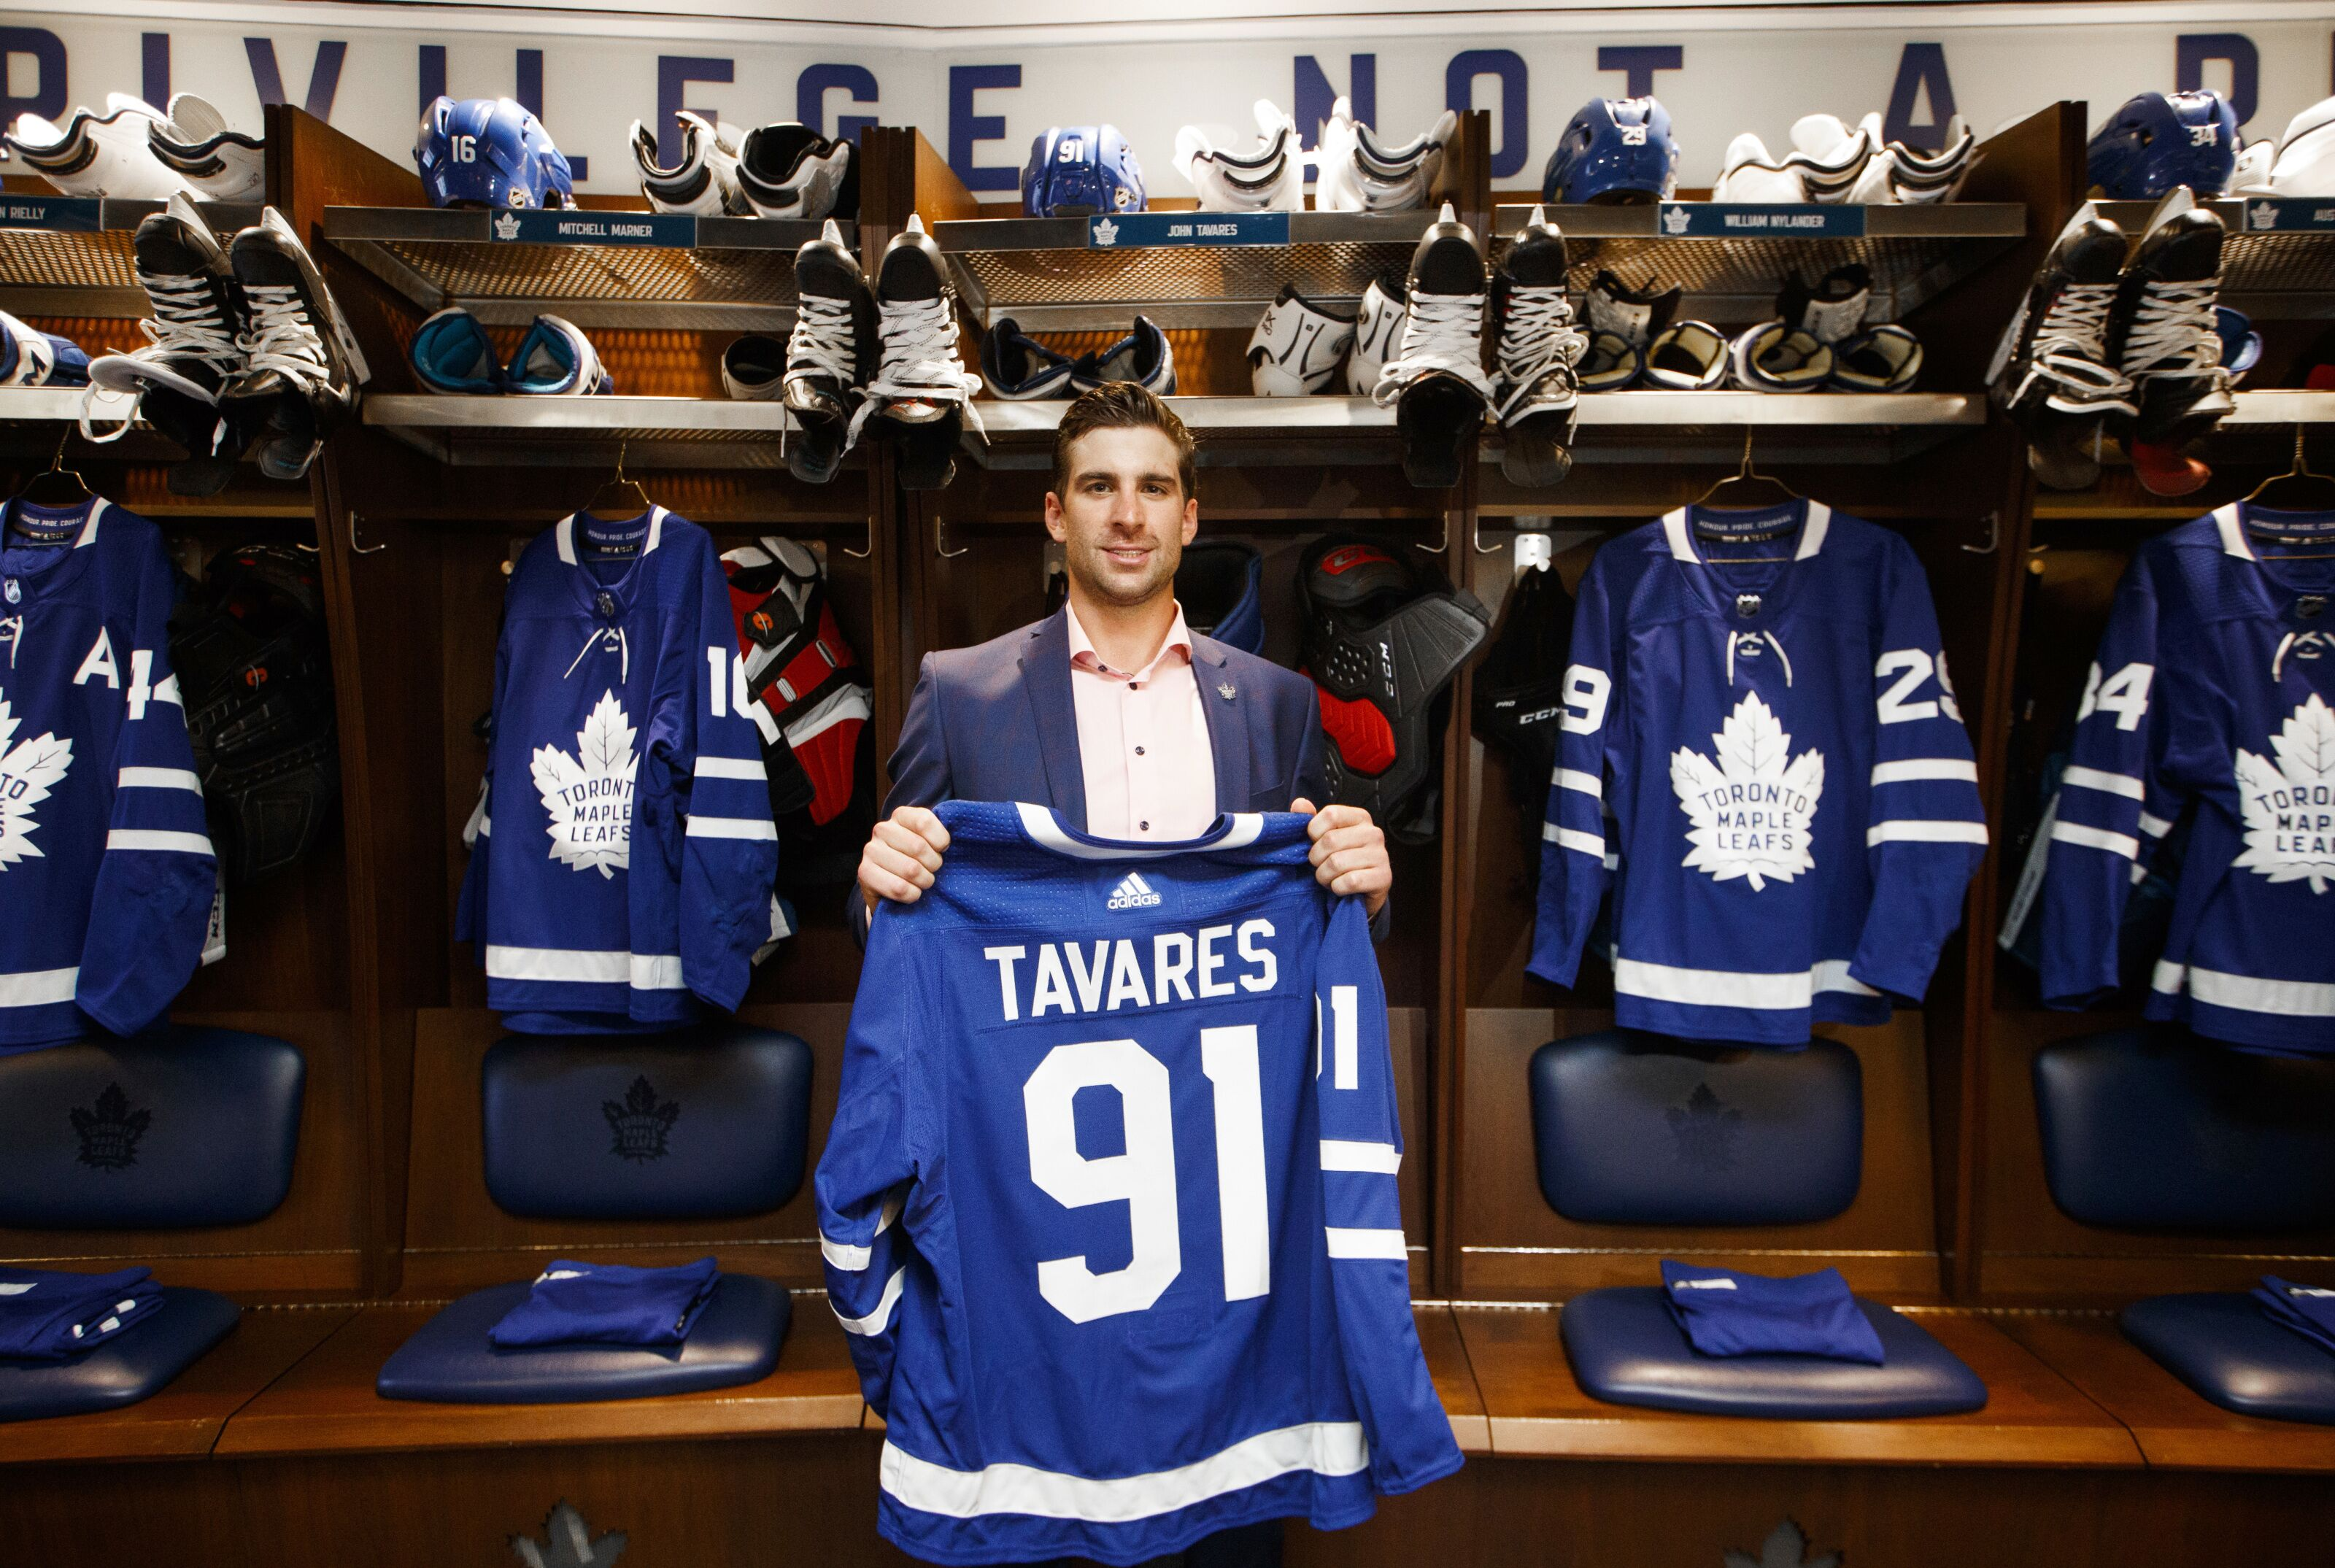 Toronto Maple Leafs: John Tavares Is the Goal Scoring Champ of the NHL